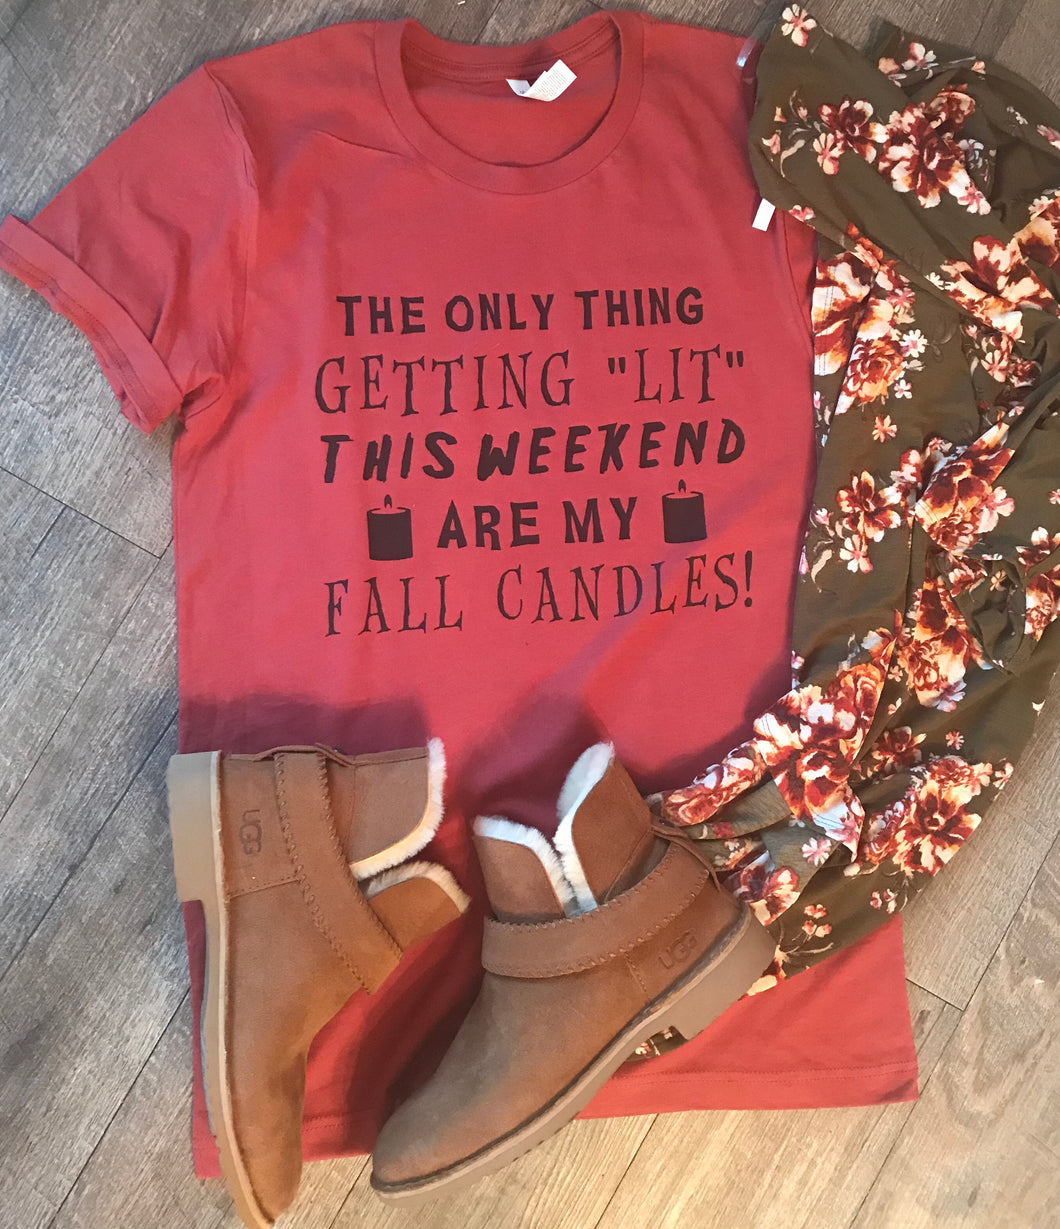 The only thing getting lit around here are my fall candles funny custom fall tee - Mavictoria Designs Hot Press Express